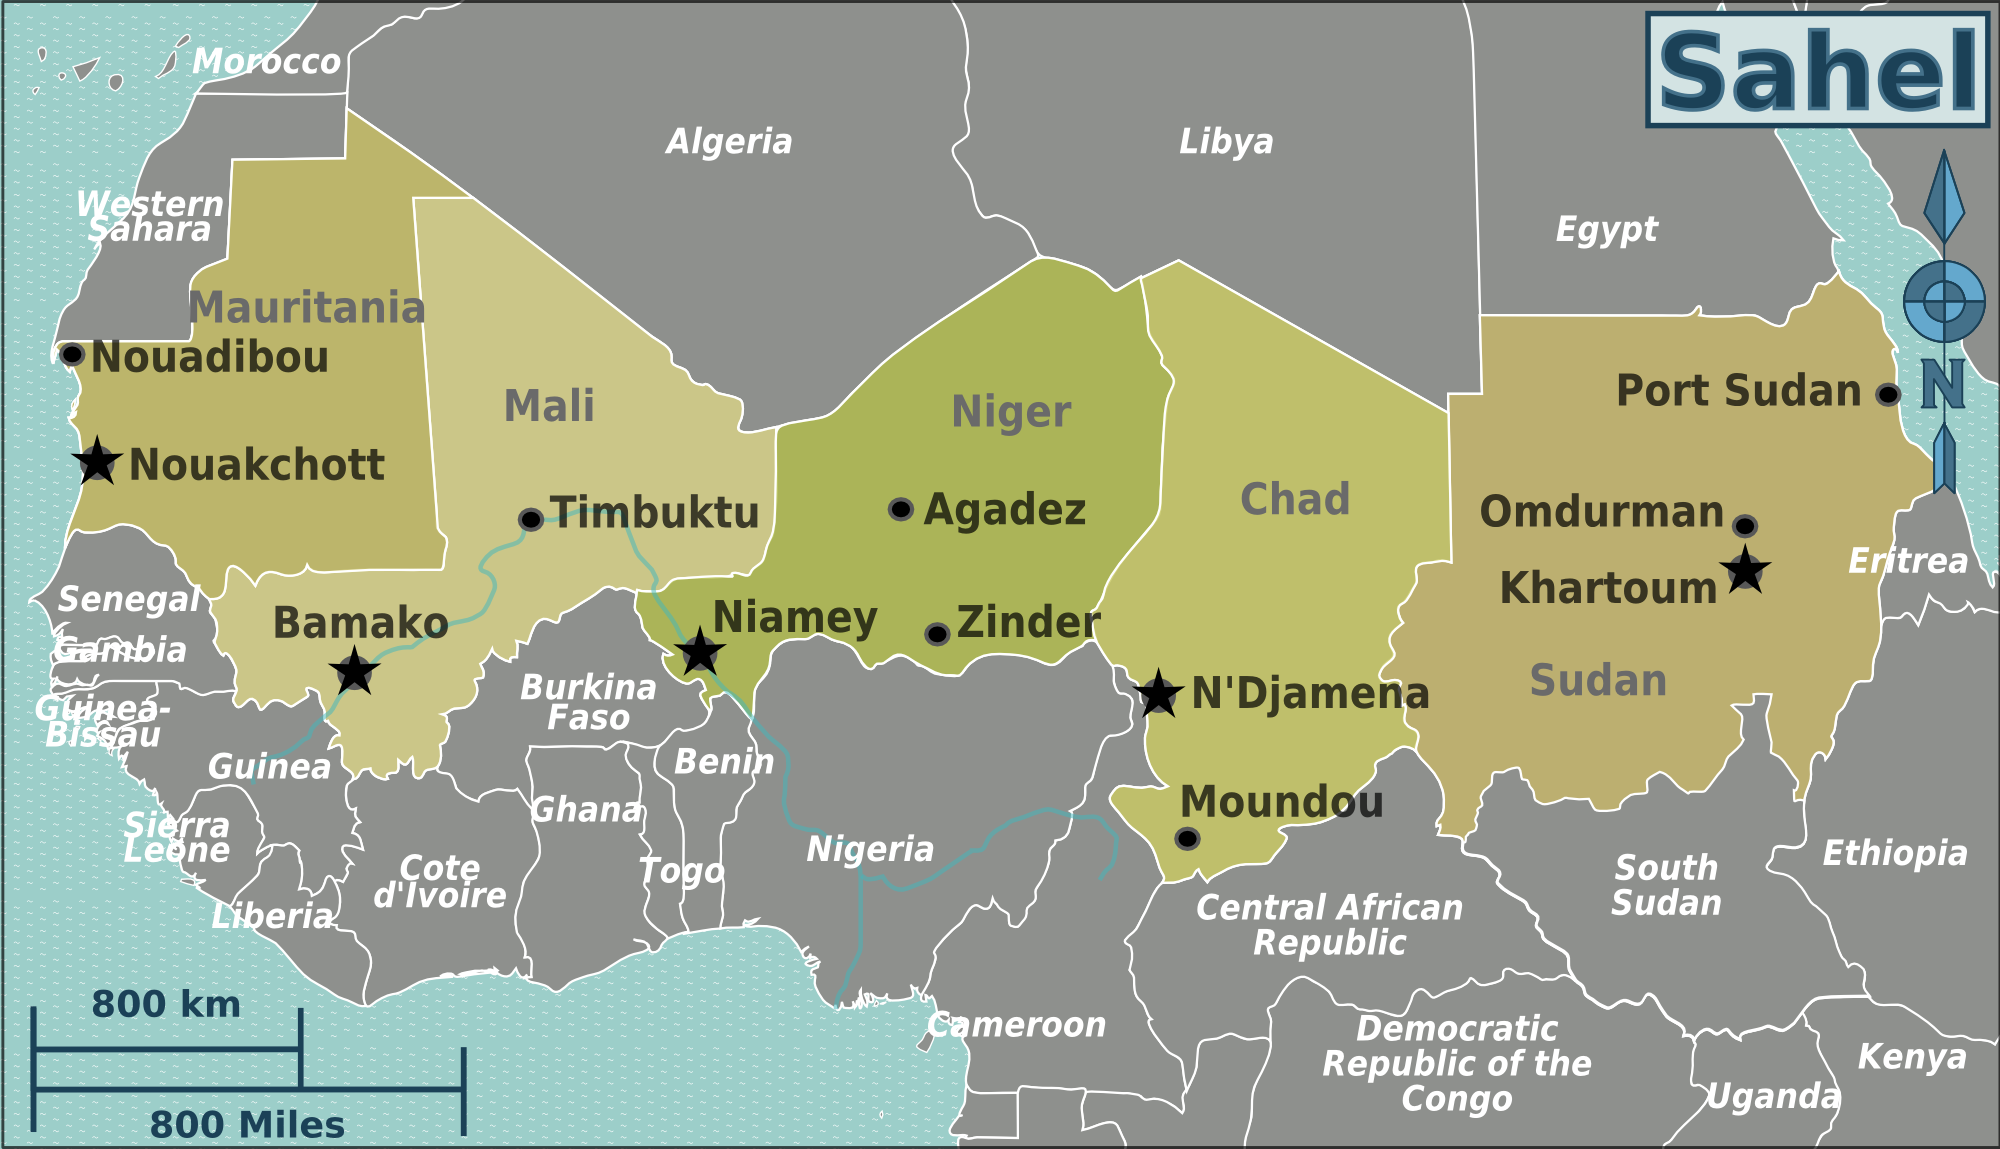 Safe haven: The future of Islamic extremism in the Sahel - Journal ...